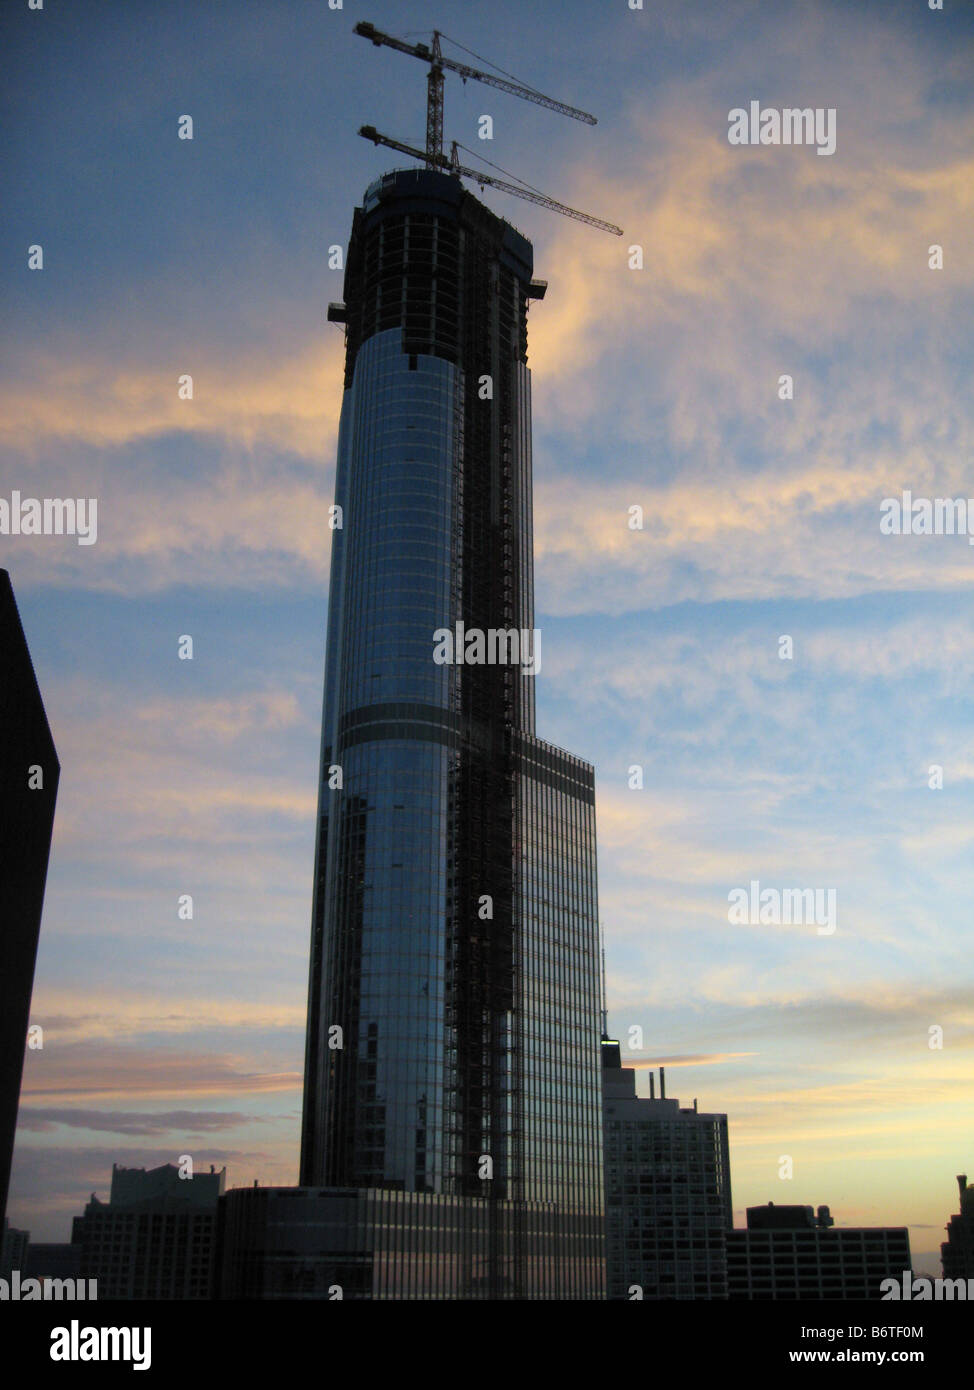 Trump Tower in Chicago under construction at dawn - Stock Image